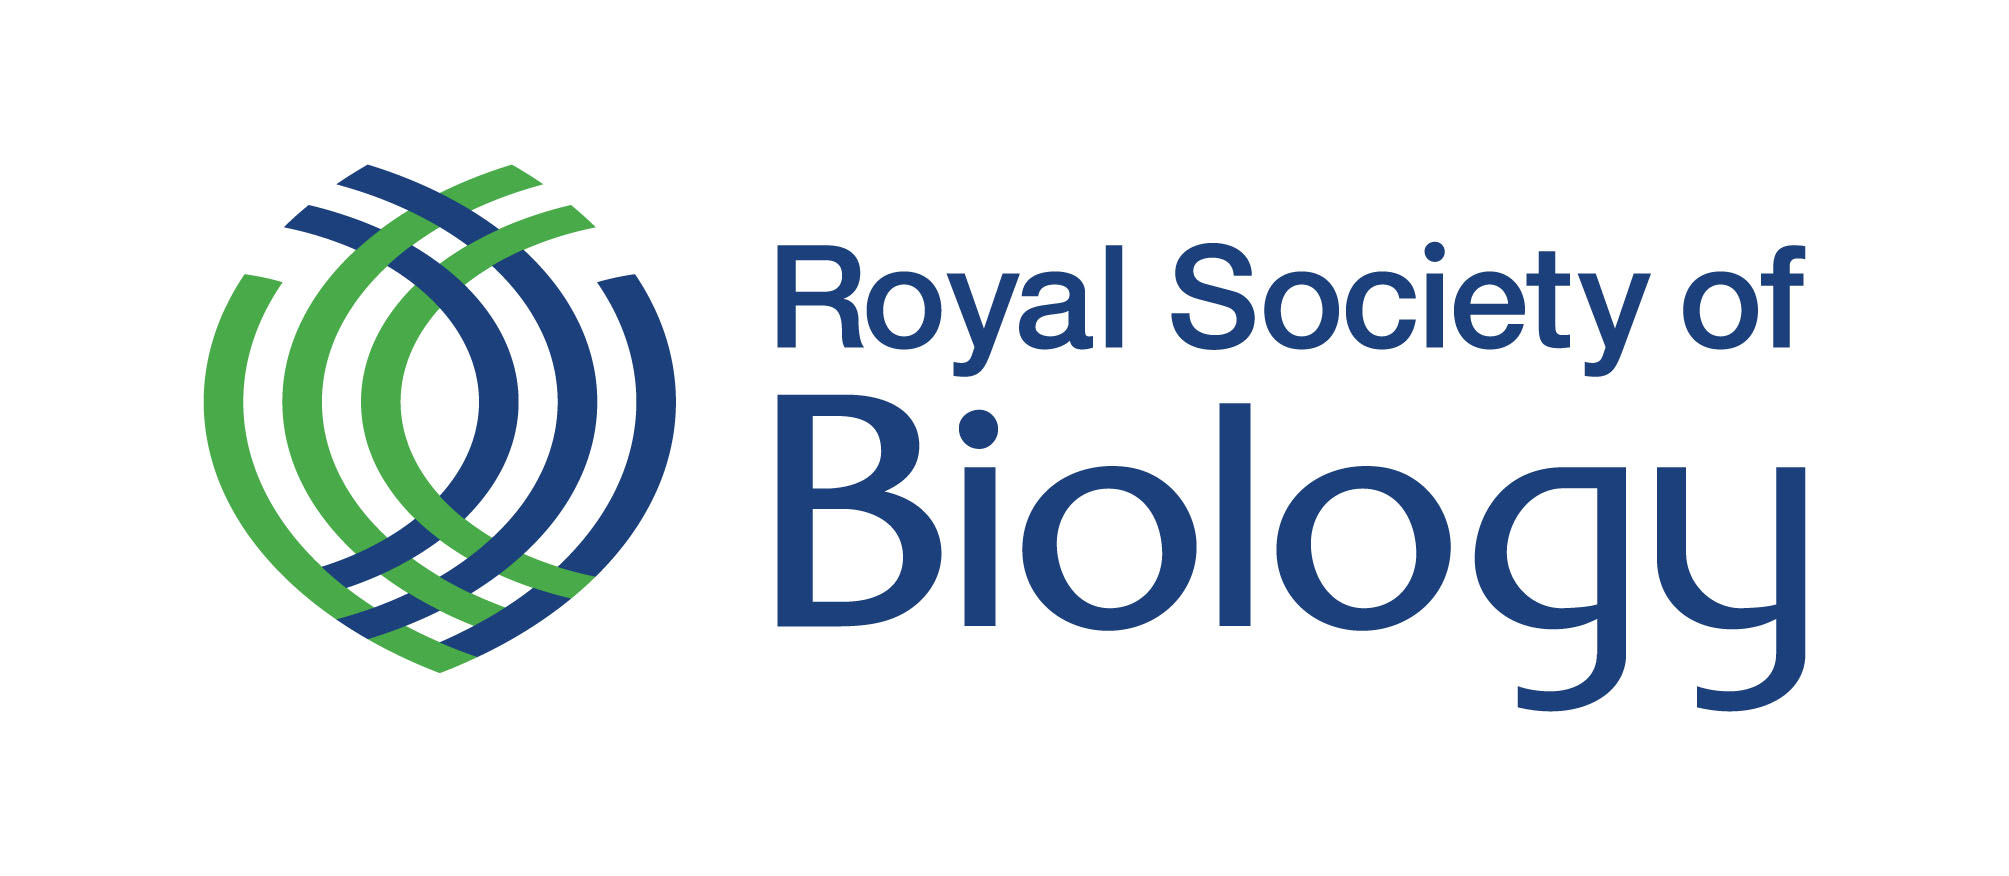 Thank you to the Royal Society of Biology for funding our 2015 visit to Orkney Science Festival.